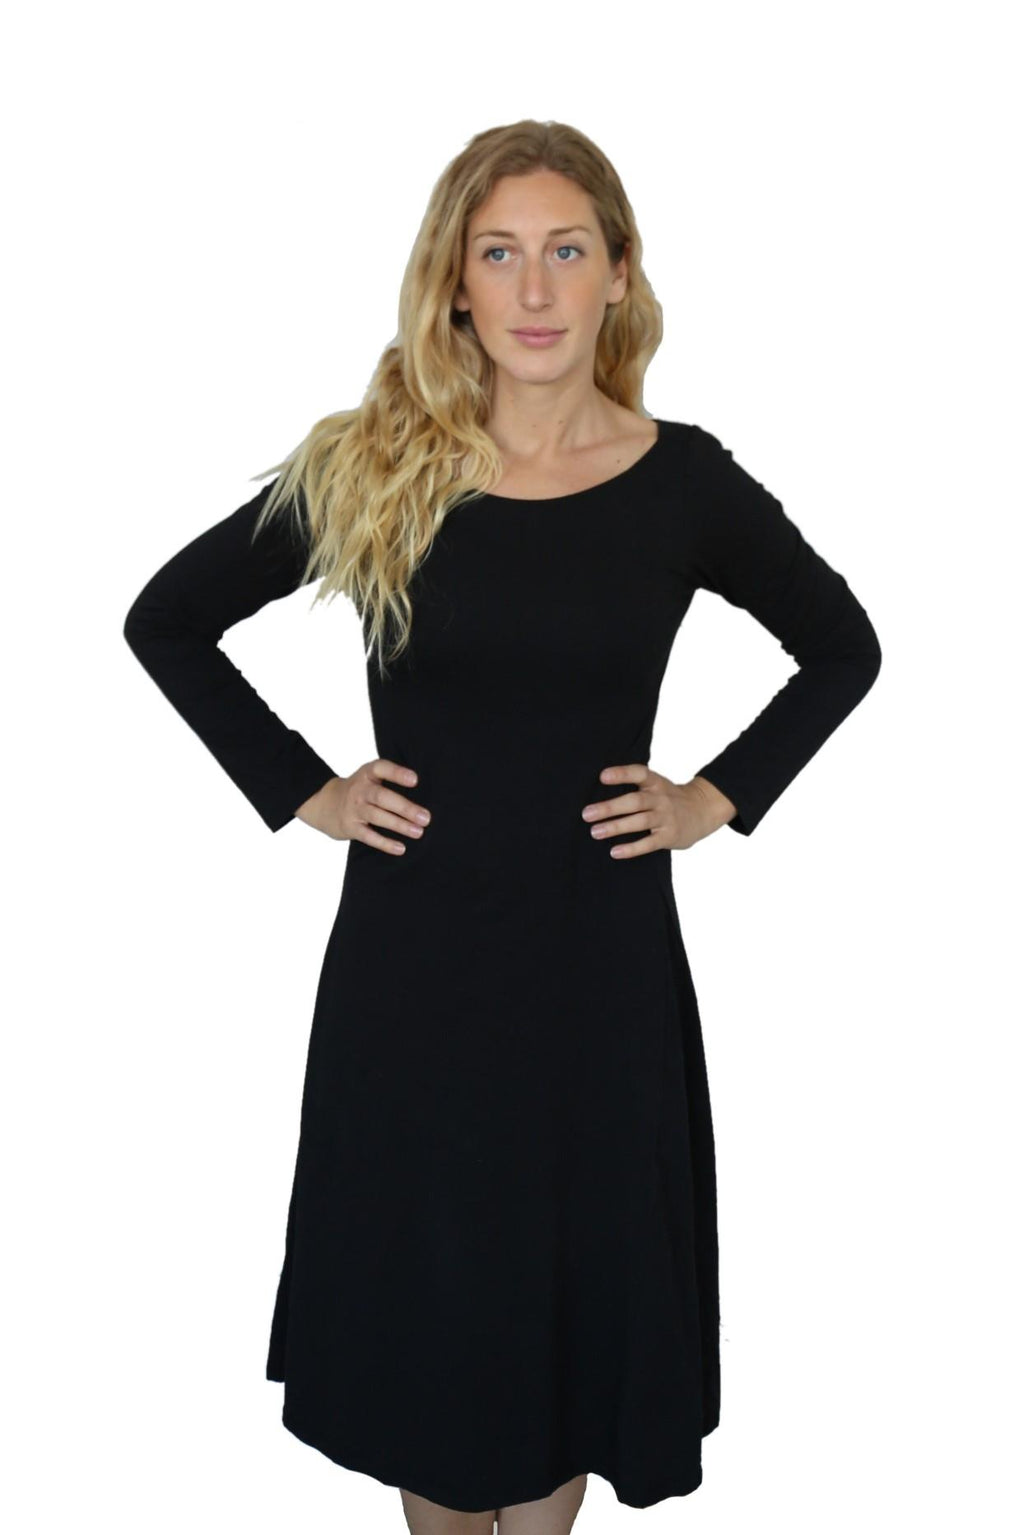 long sleeve hemp and organic cotton dress with a scoop neckline, fitted body and flowy skirt from the hips to just past knee length in black